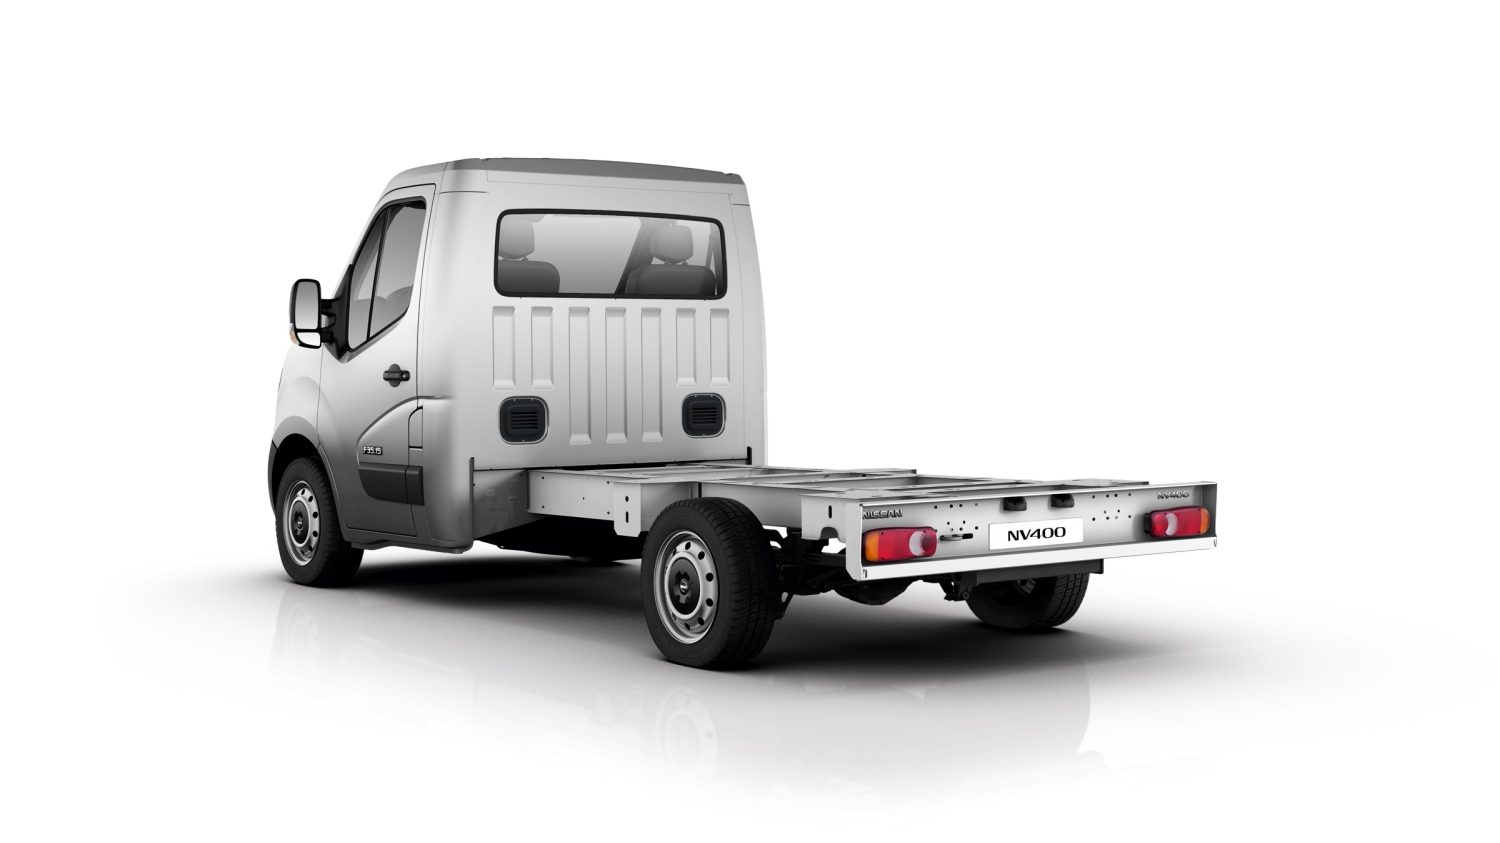 Nissan NV400 - Chassis Cab